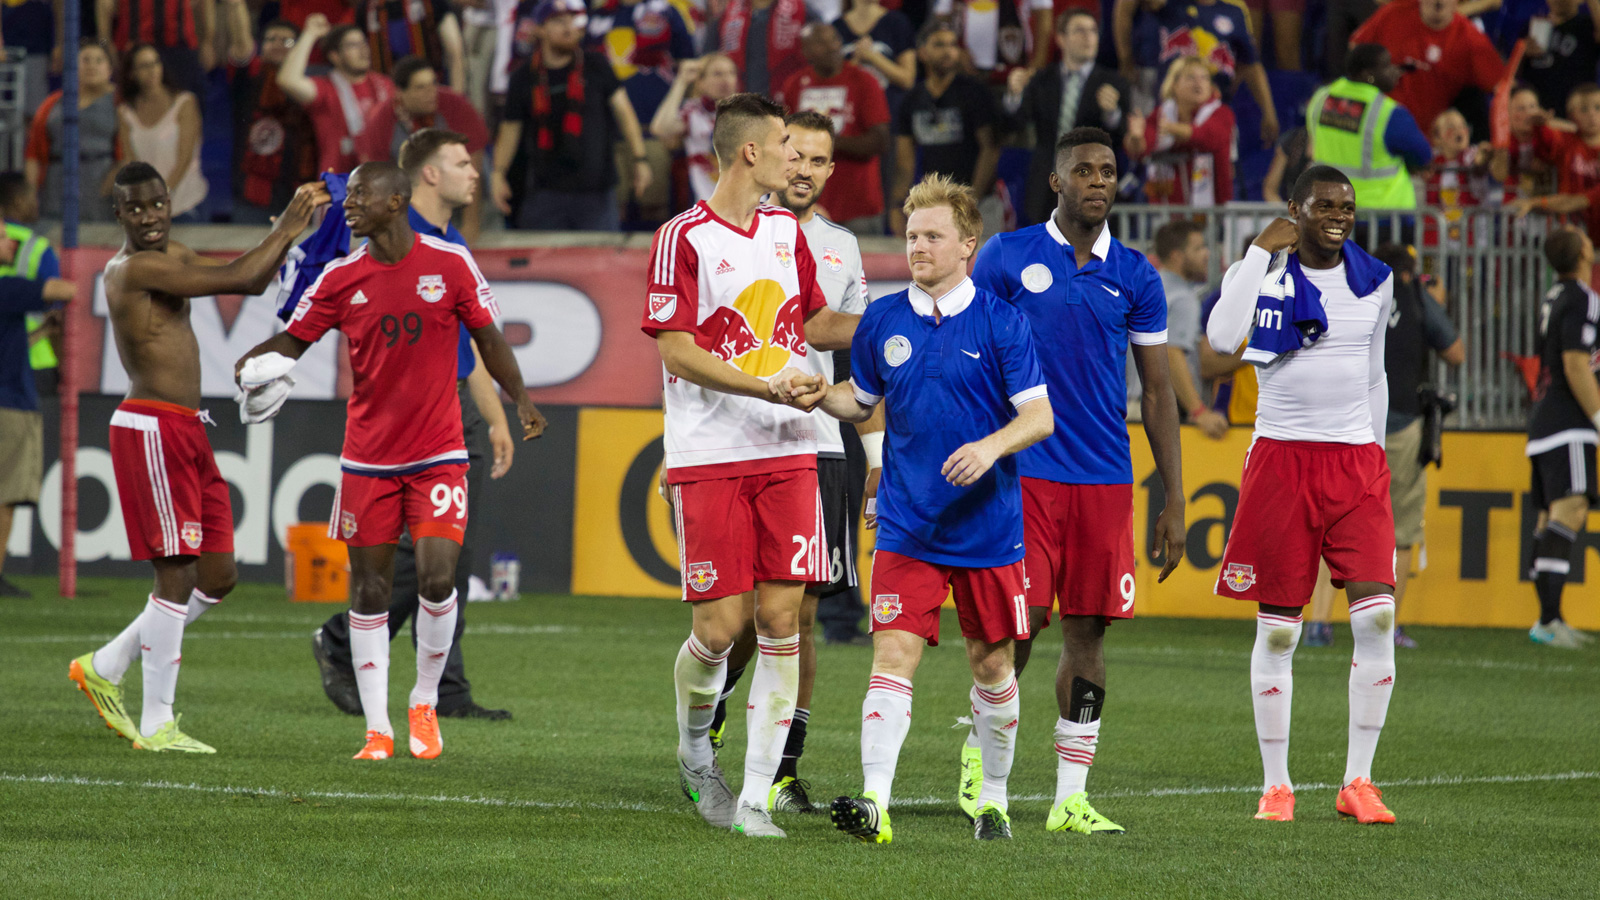 Red Bulls striker Anatole Abang (far right), captain Dax McCarty (middle), defender Anthony Wallace (left) and midfielder Dane Richards (far left) make their celebratory lap around Red Bull Arena with the blue jerseys they exchanged with members of the New York Cosmos. Defender Matt Miazga (20) and striker Bradley Wright-Phillips (99) are also pictured.